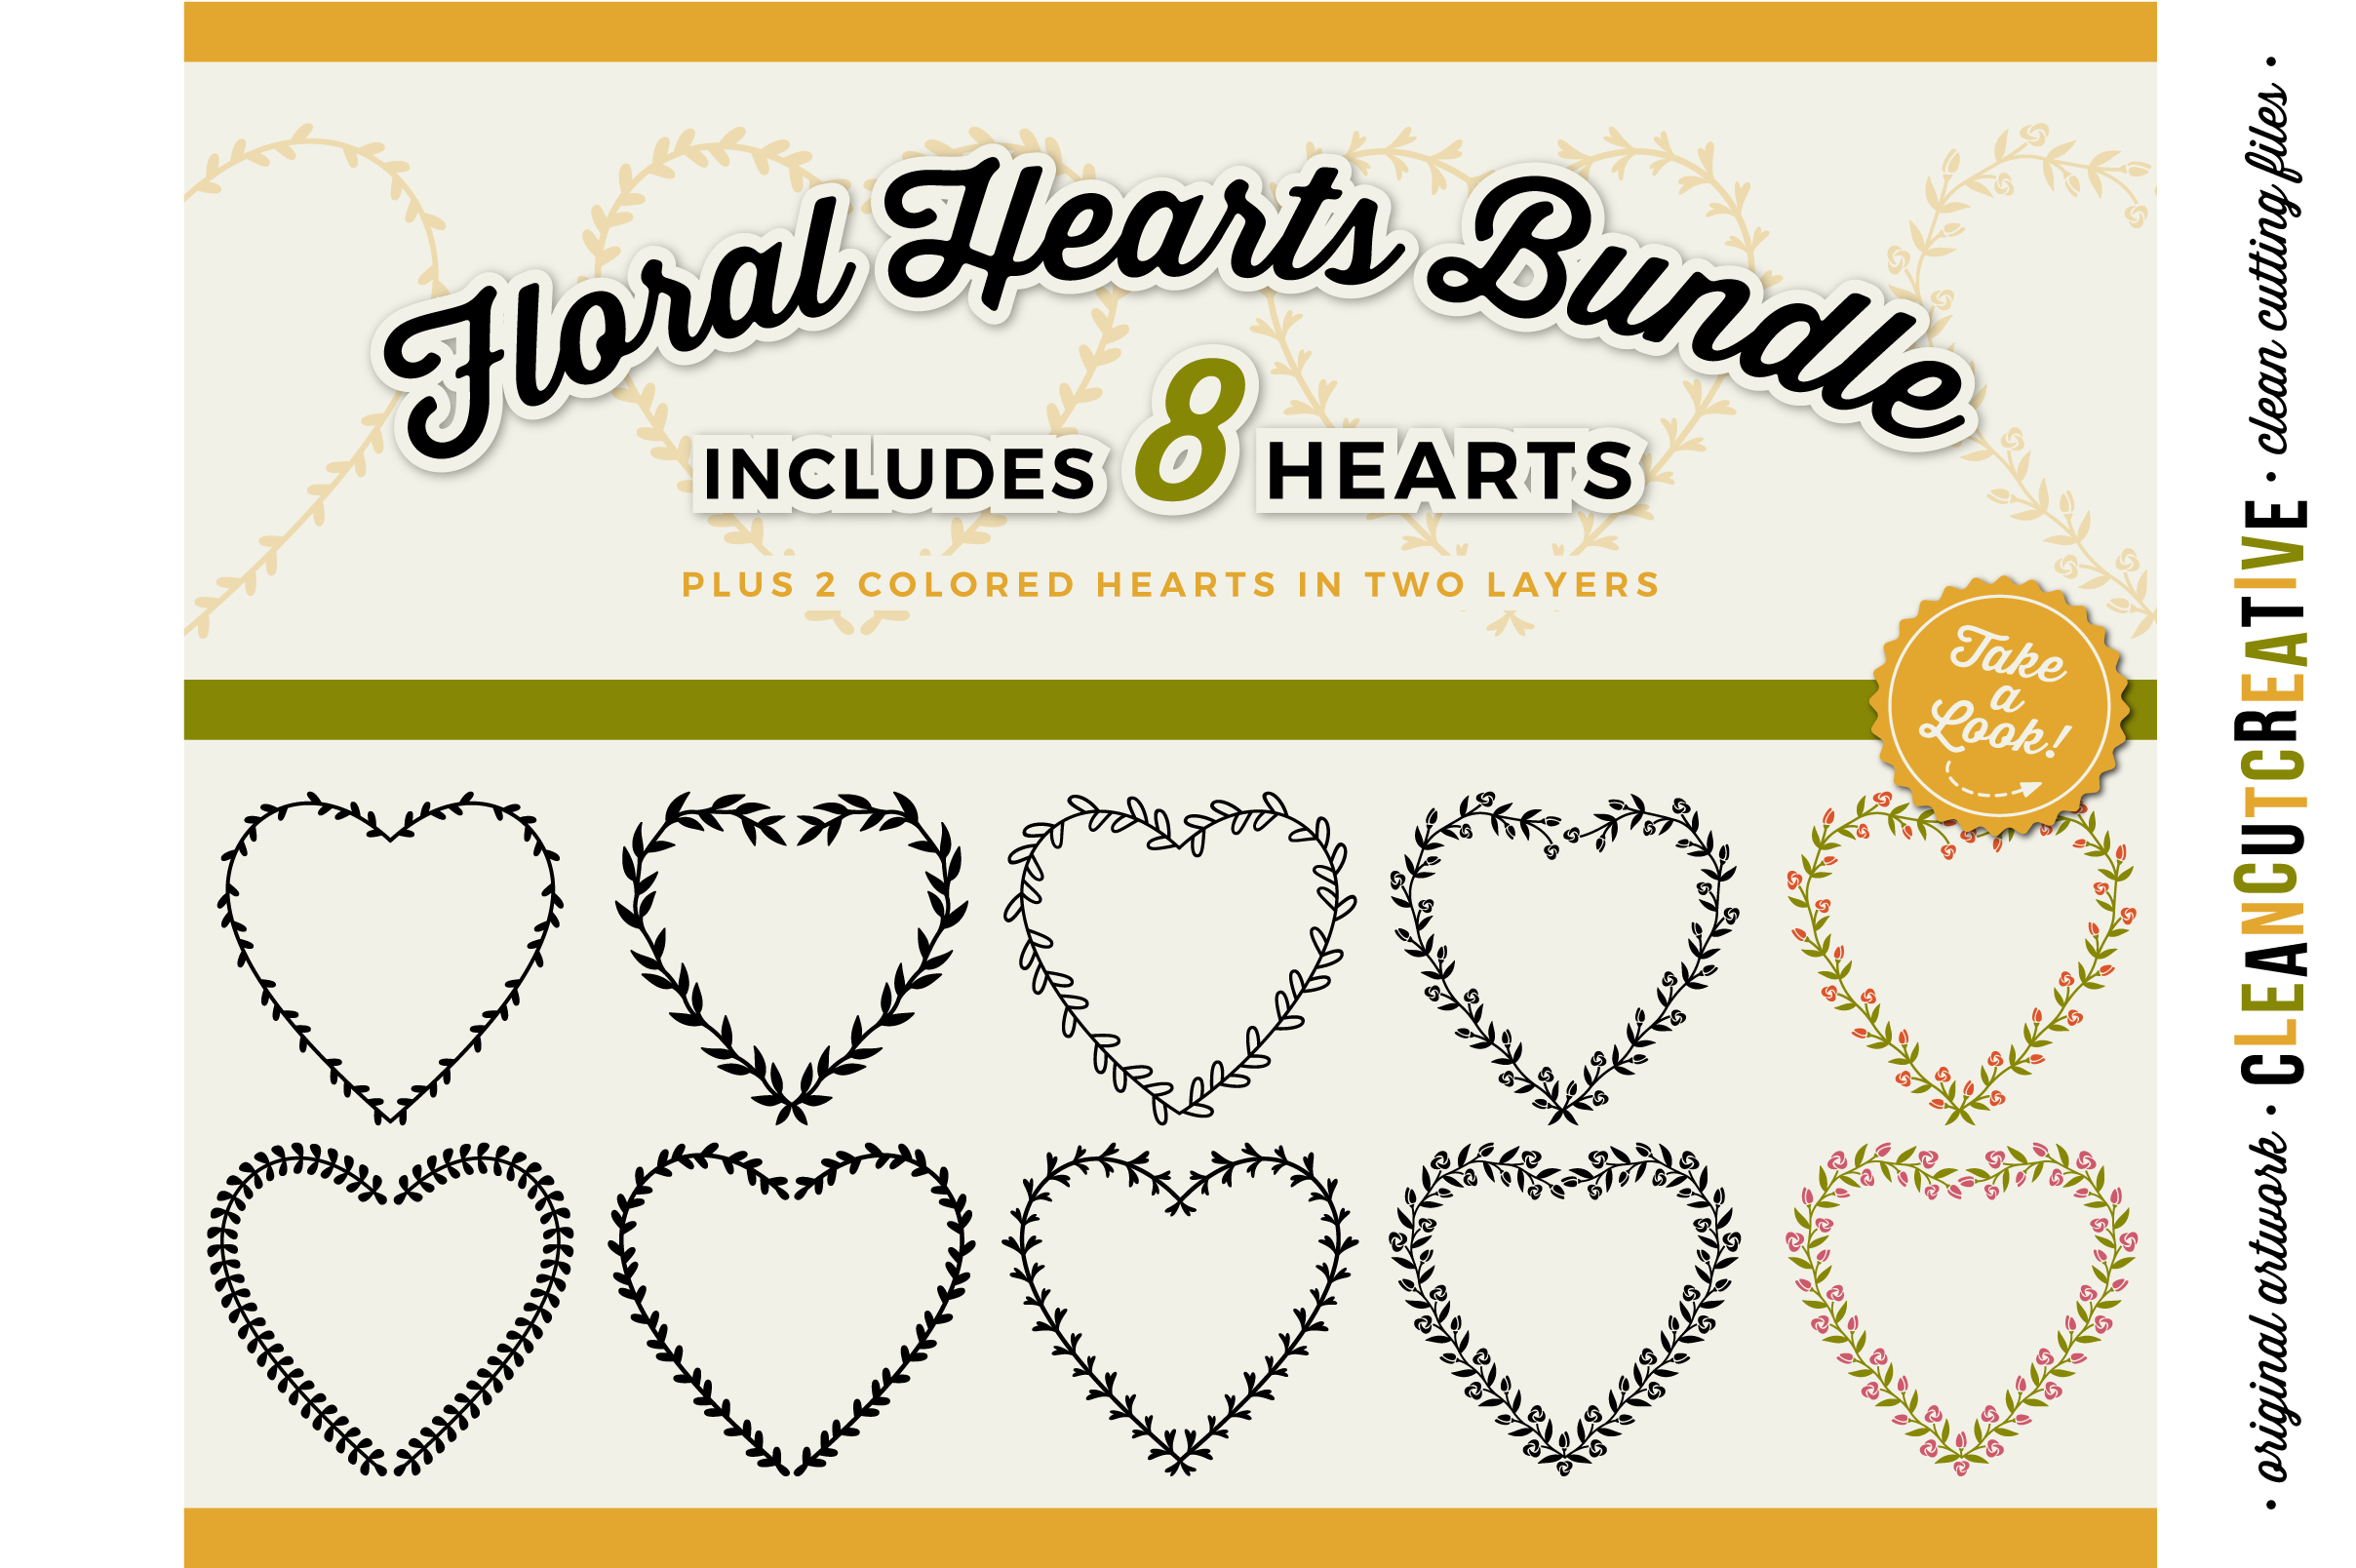 8 svg FLORAL HEARTS floral leaf heart wreath frames - SVG DXF EPS PNG - for Cricut and Silhouette Cameo - clean cutting digital files example image 1